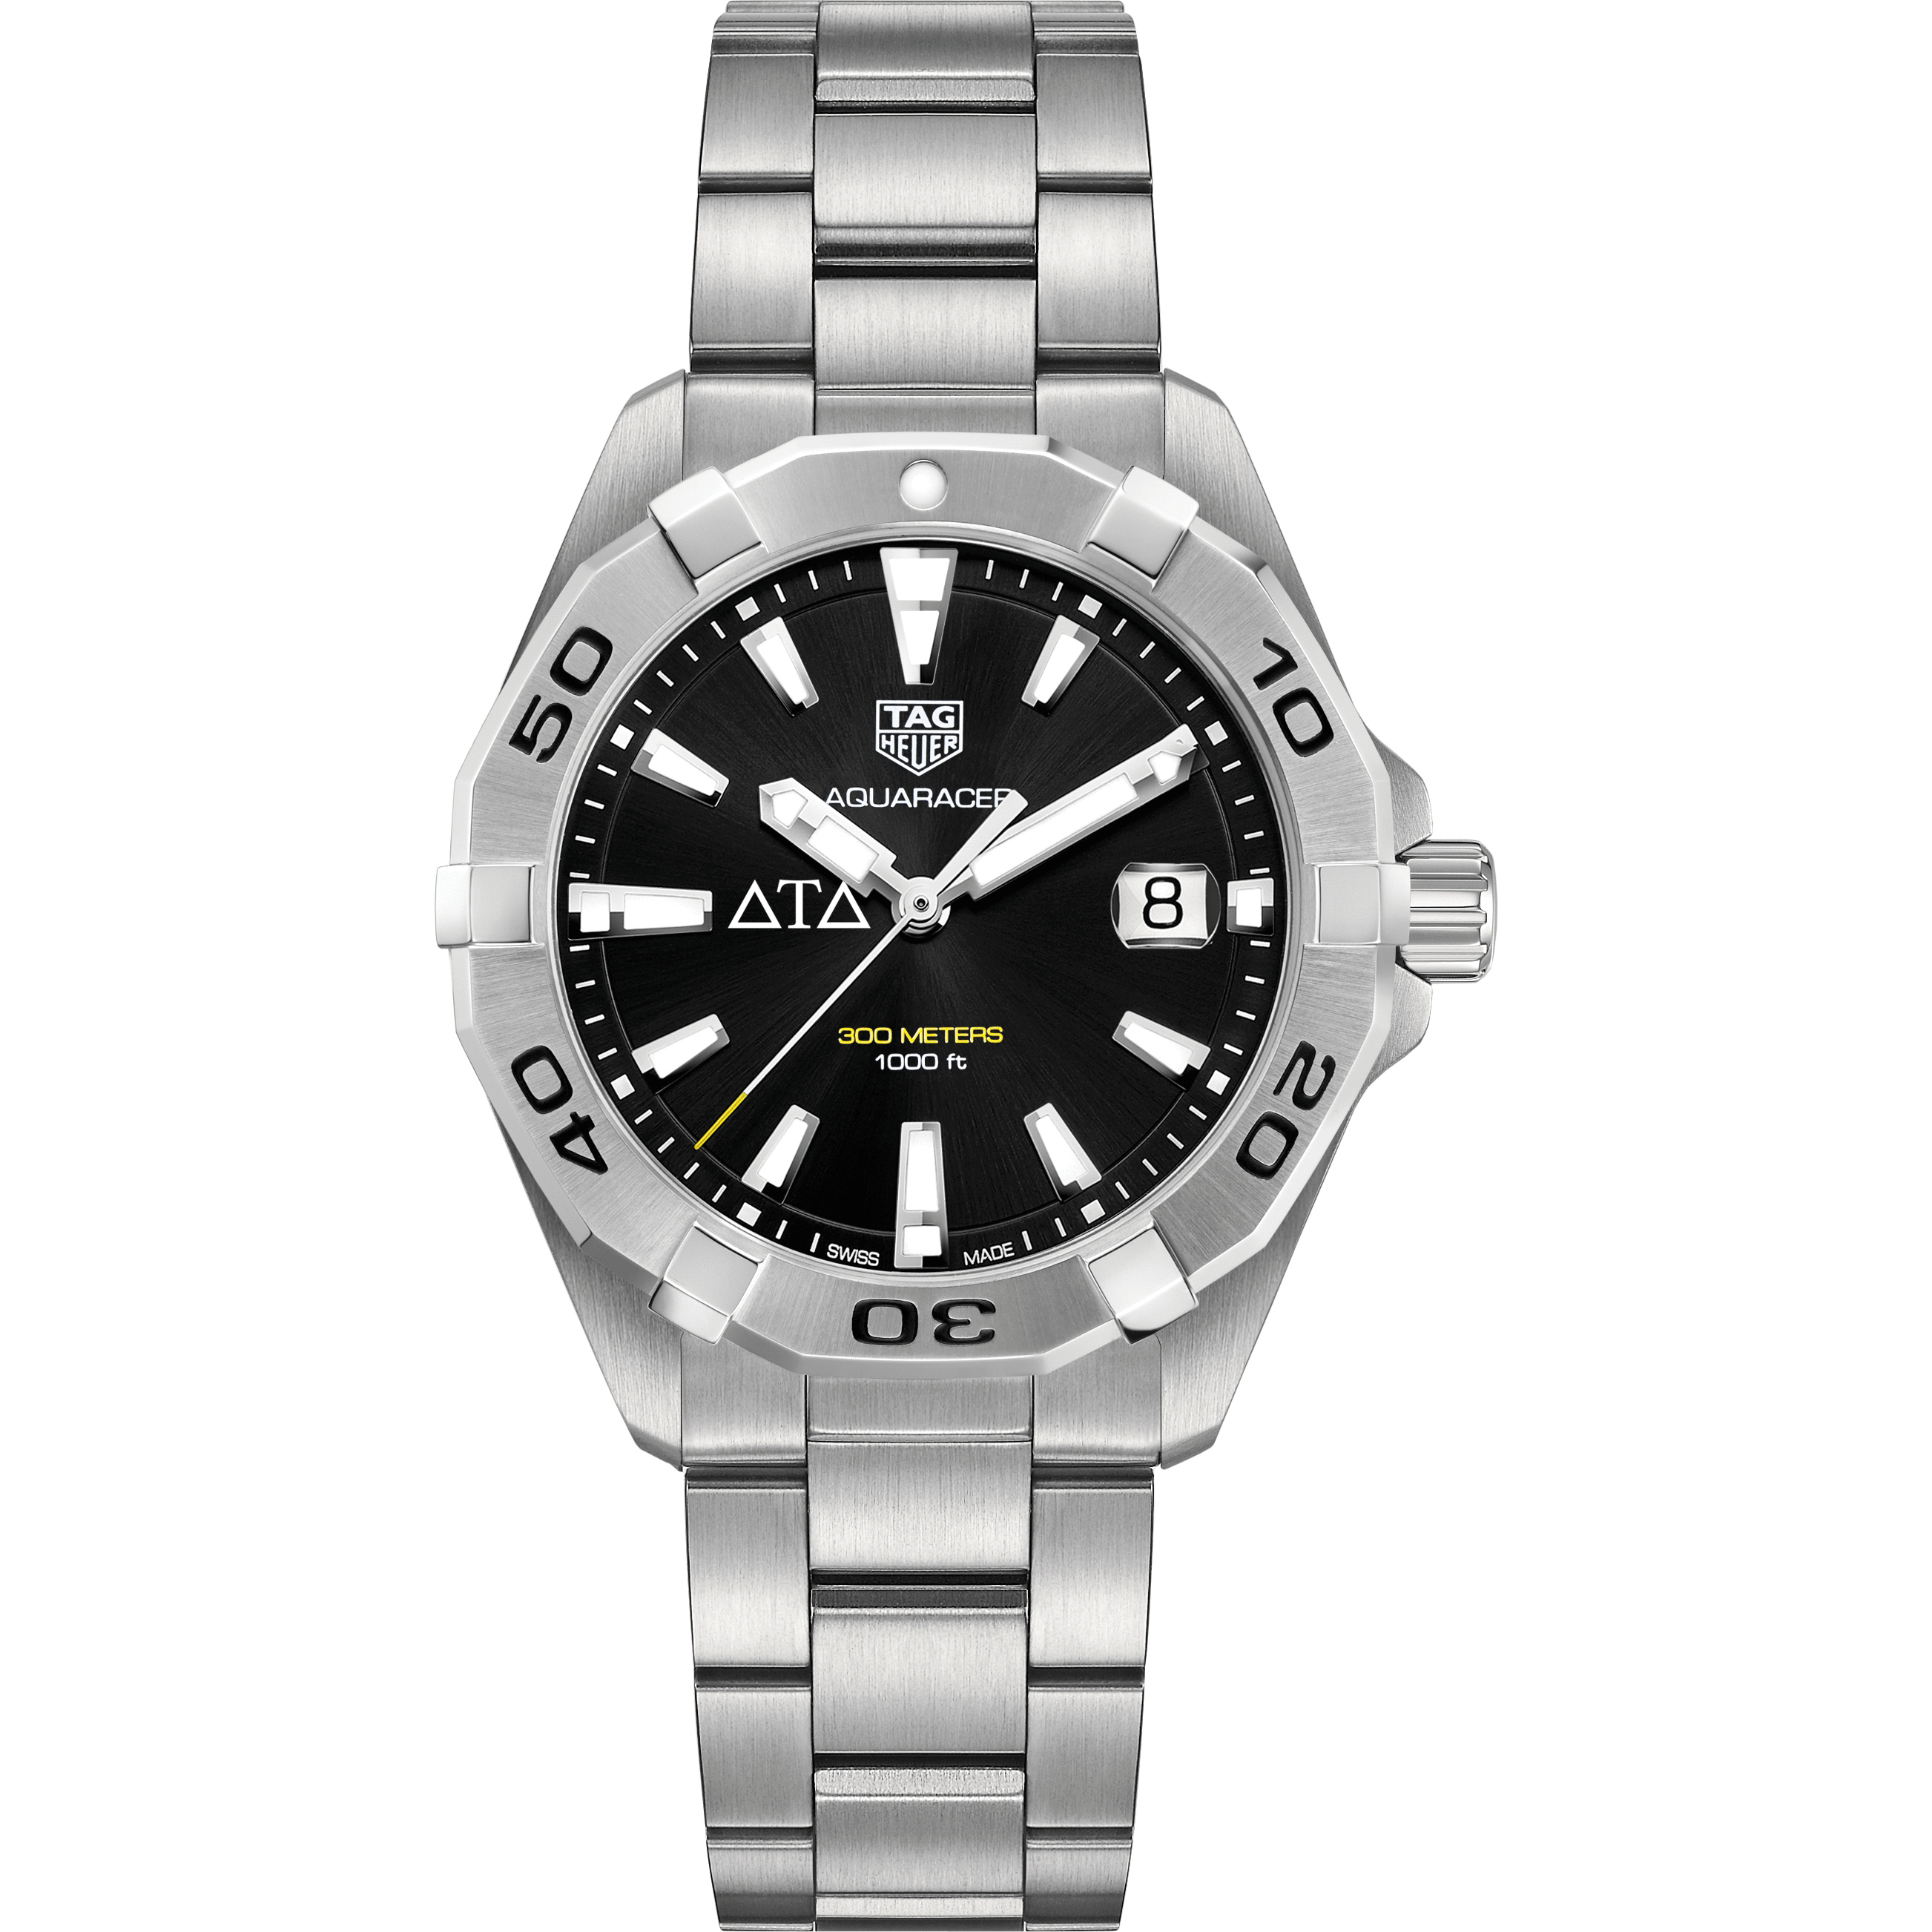 Delta Tau Delta Men's TAG Heuer Steel Aquaracer with Black Dial - Image 2